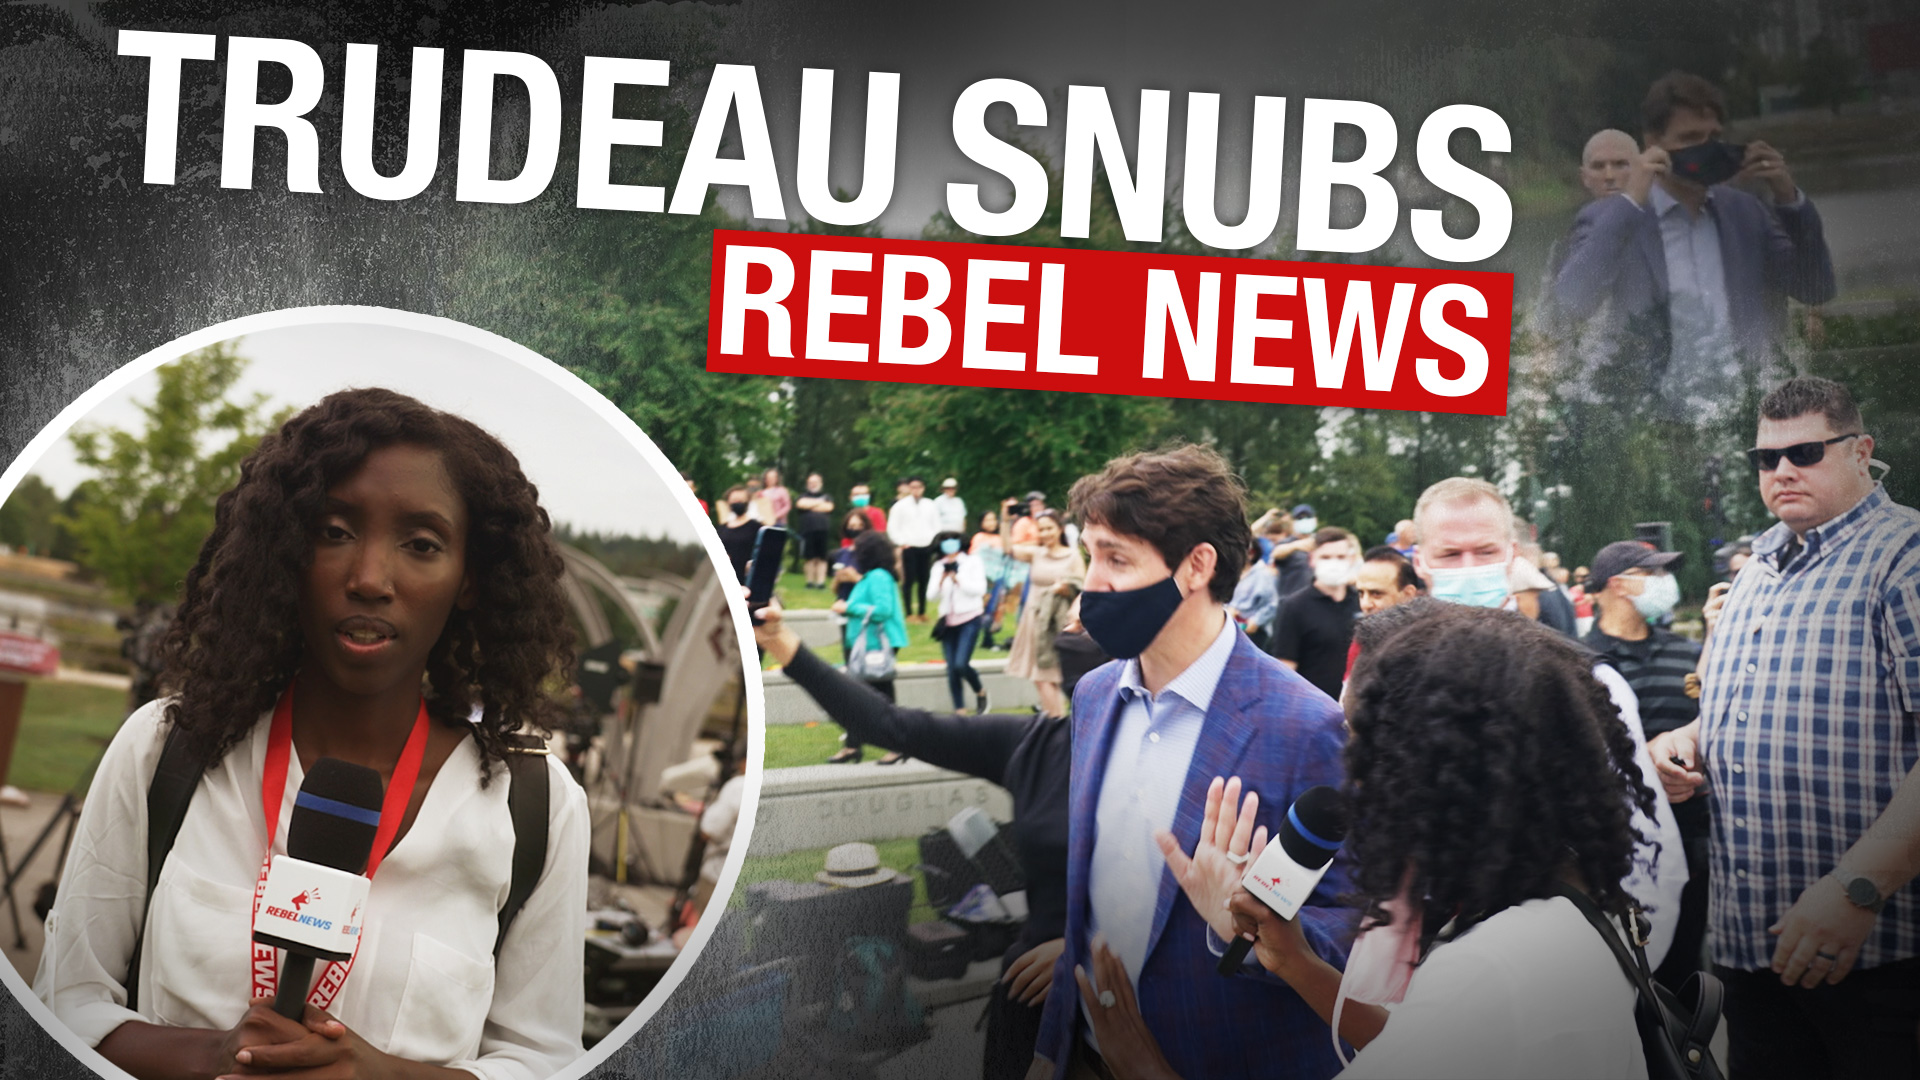 Trudeau ignores reporter's question on the burning and vandalizing of over 20 churches in 3 weeks